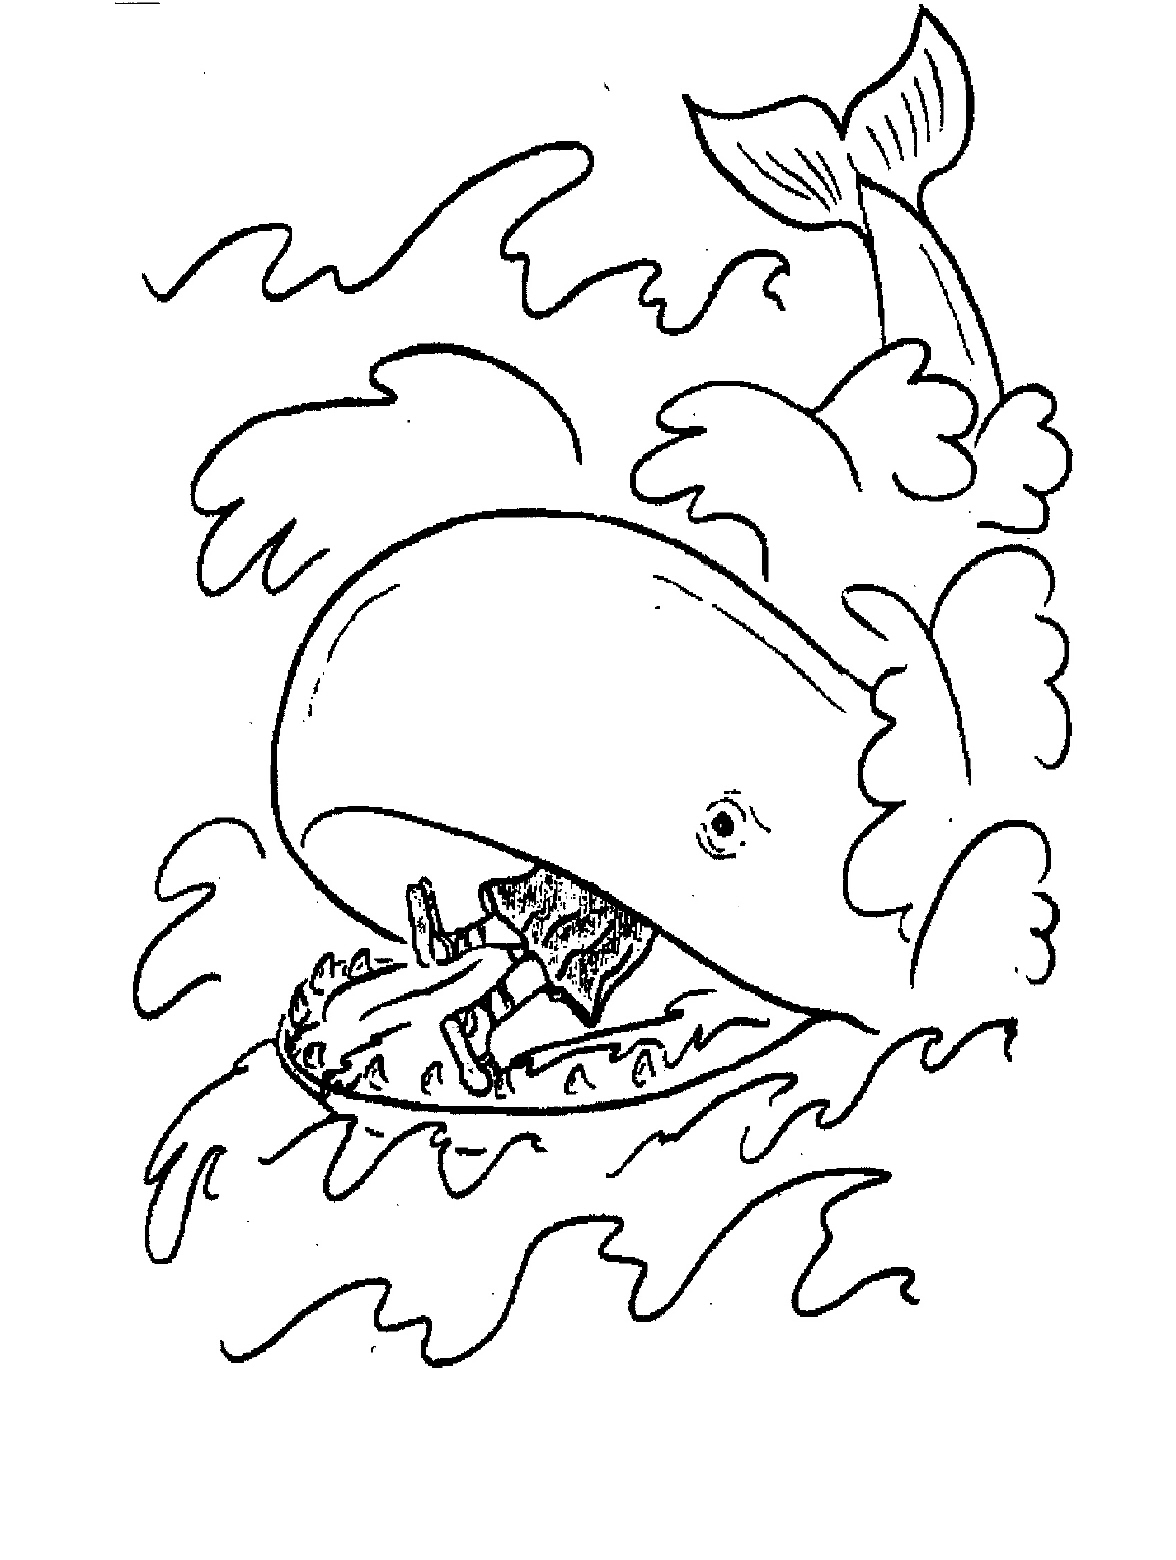 Jonah Coloring Pages Best Free Printable Jonah And The Whale Coloring Pages For Kids Design Inspiration